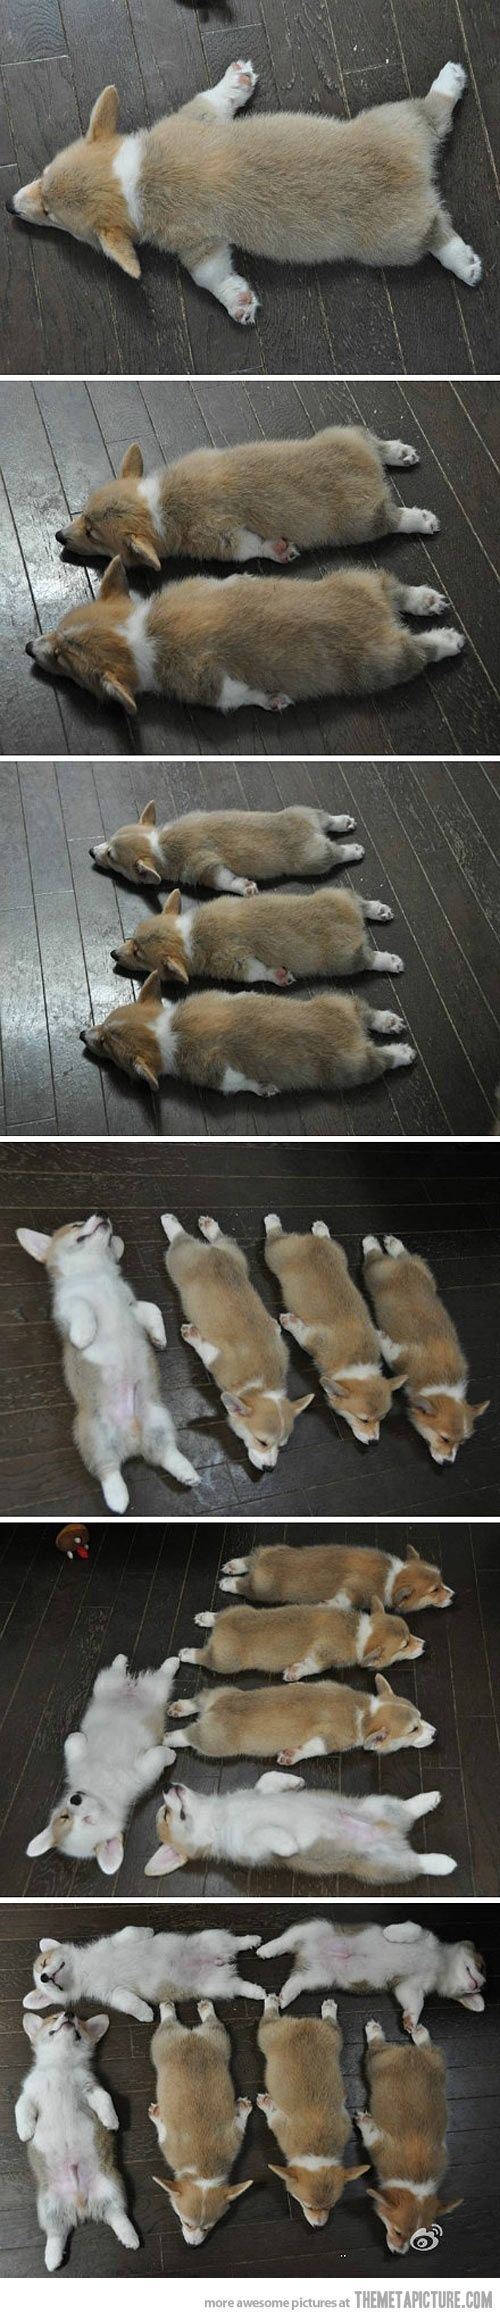 I just want a herd of corgi puppies.